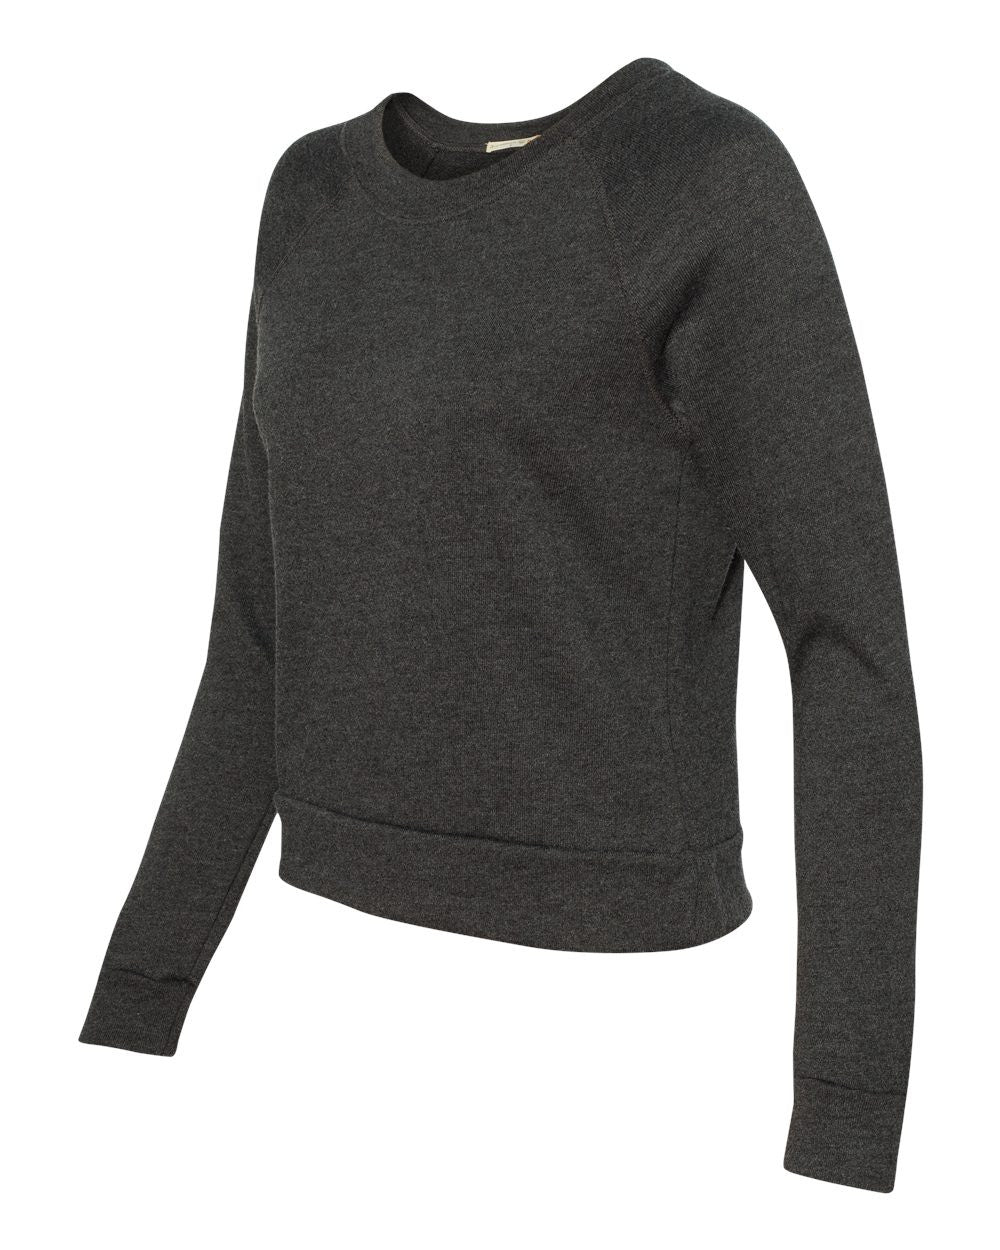 9820-Women's French Terry Raglan Sweatshirt